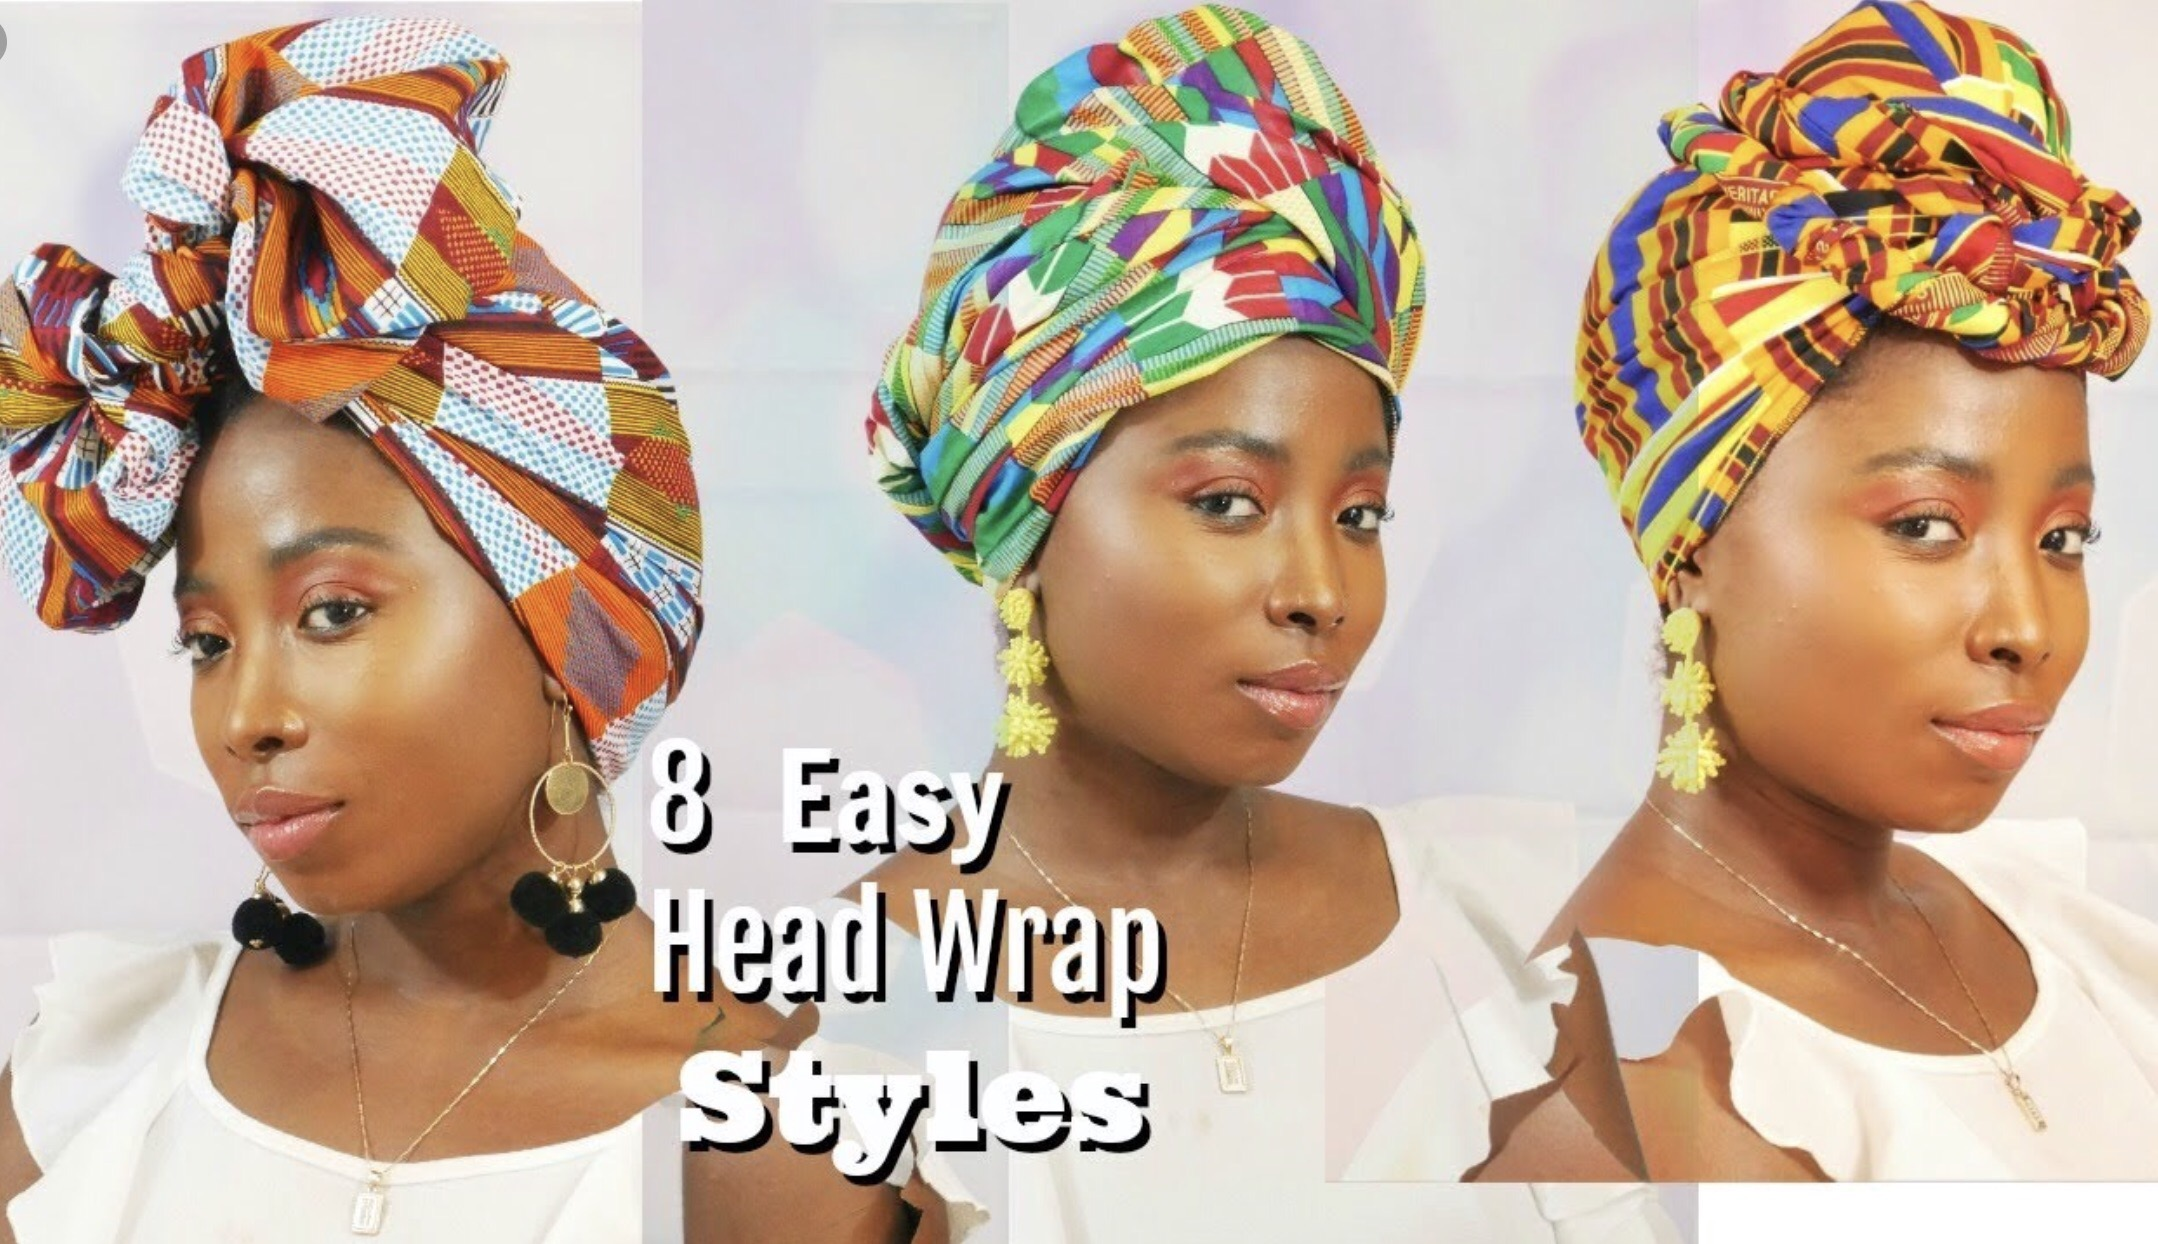 8 Easy Head Wrap Turban Styles